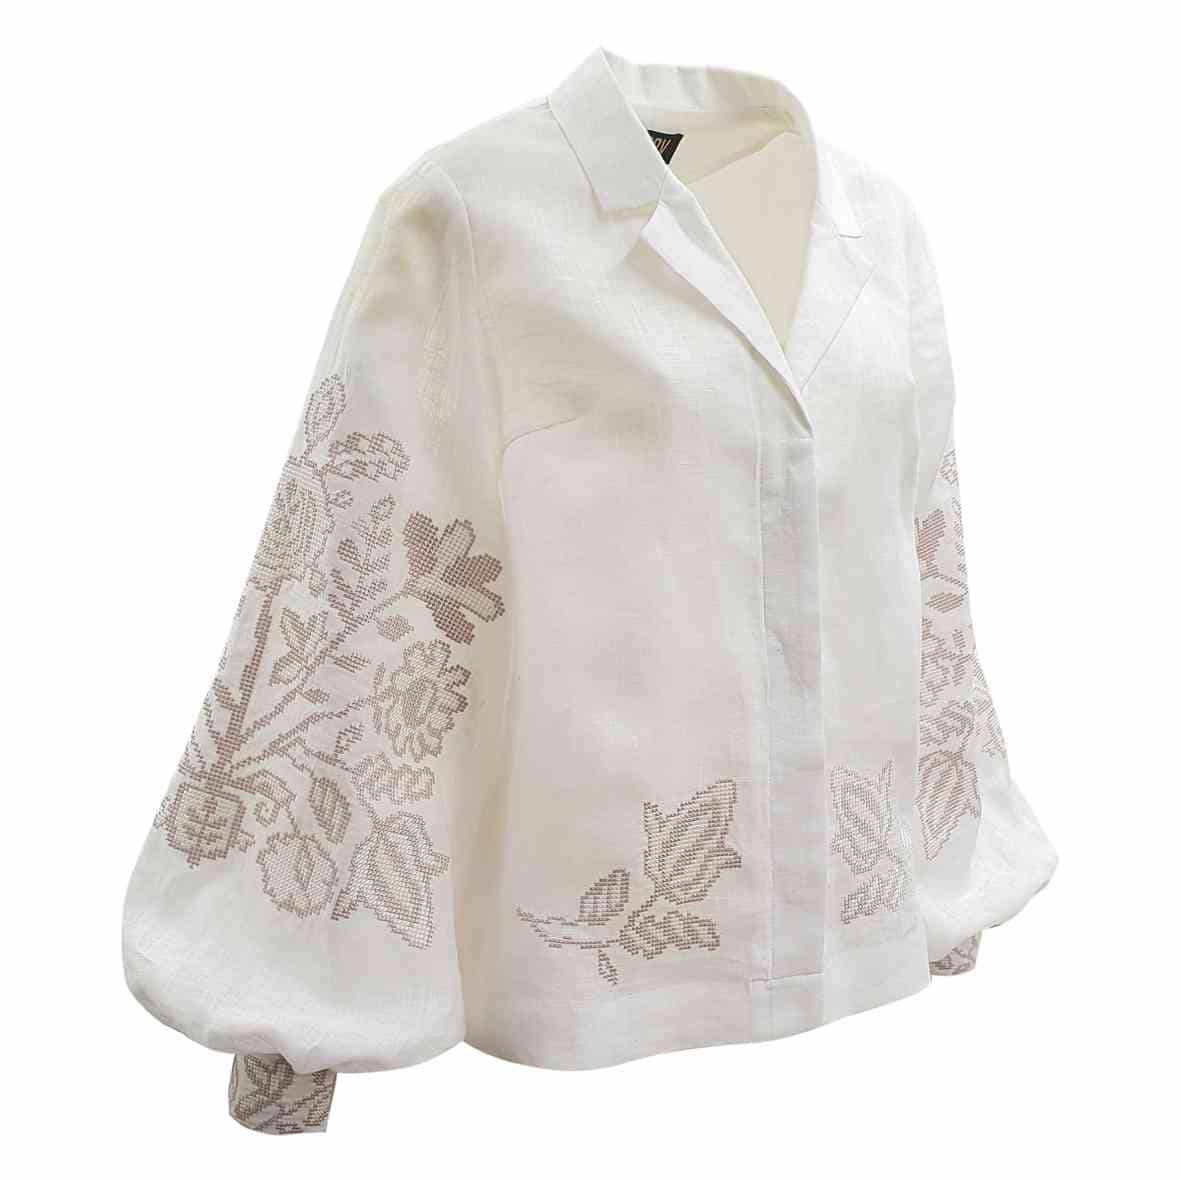 embroidered shirts Ukraine